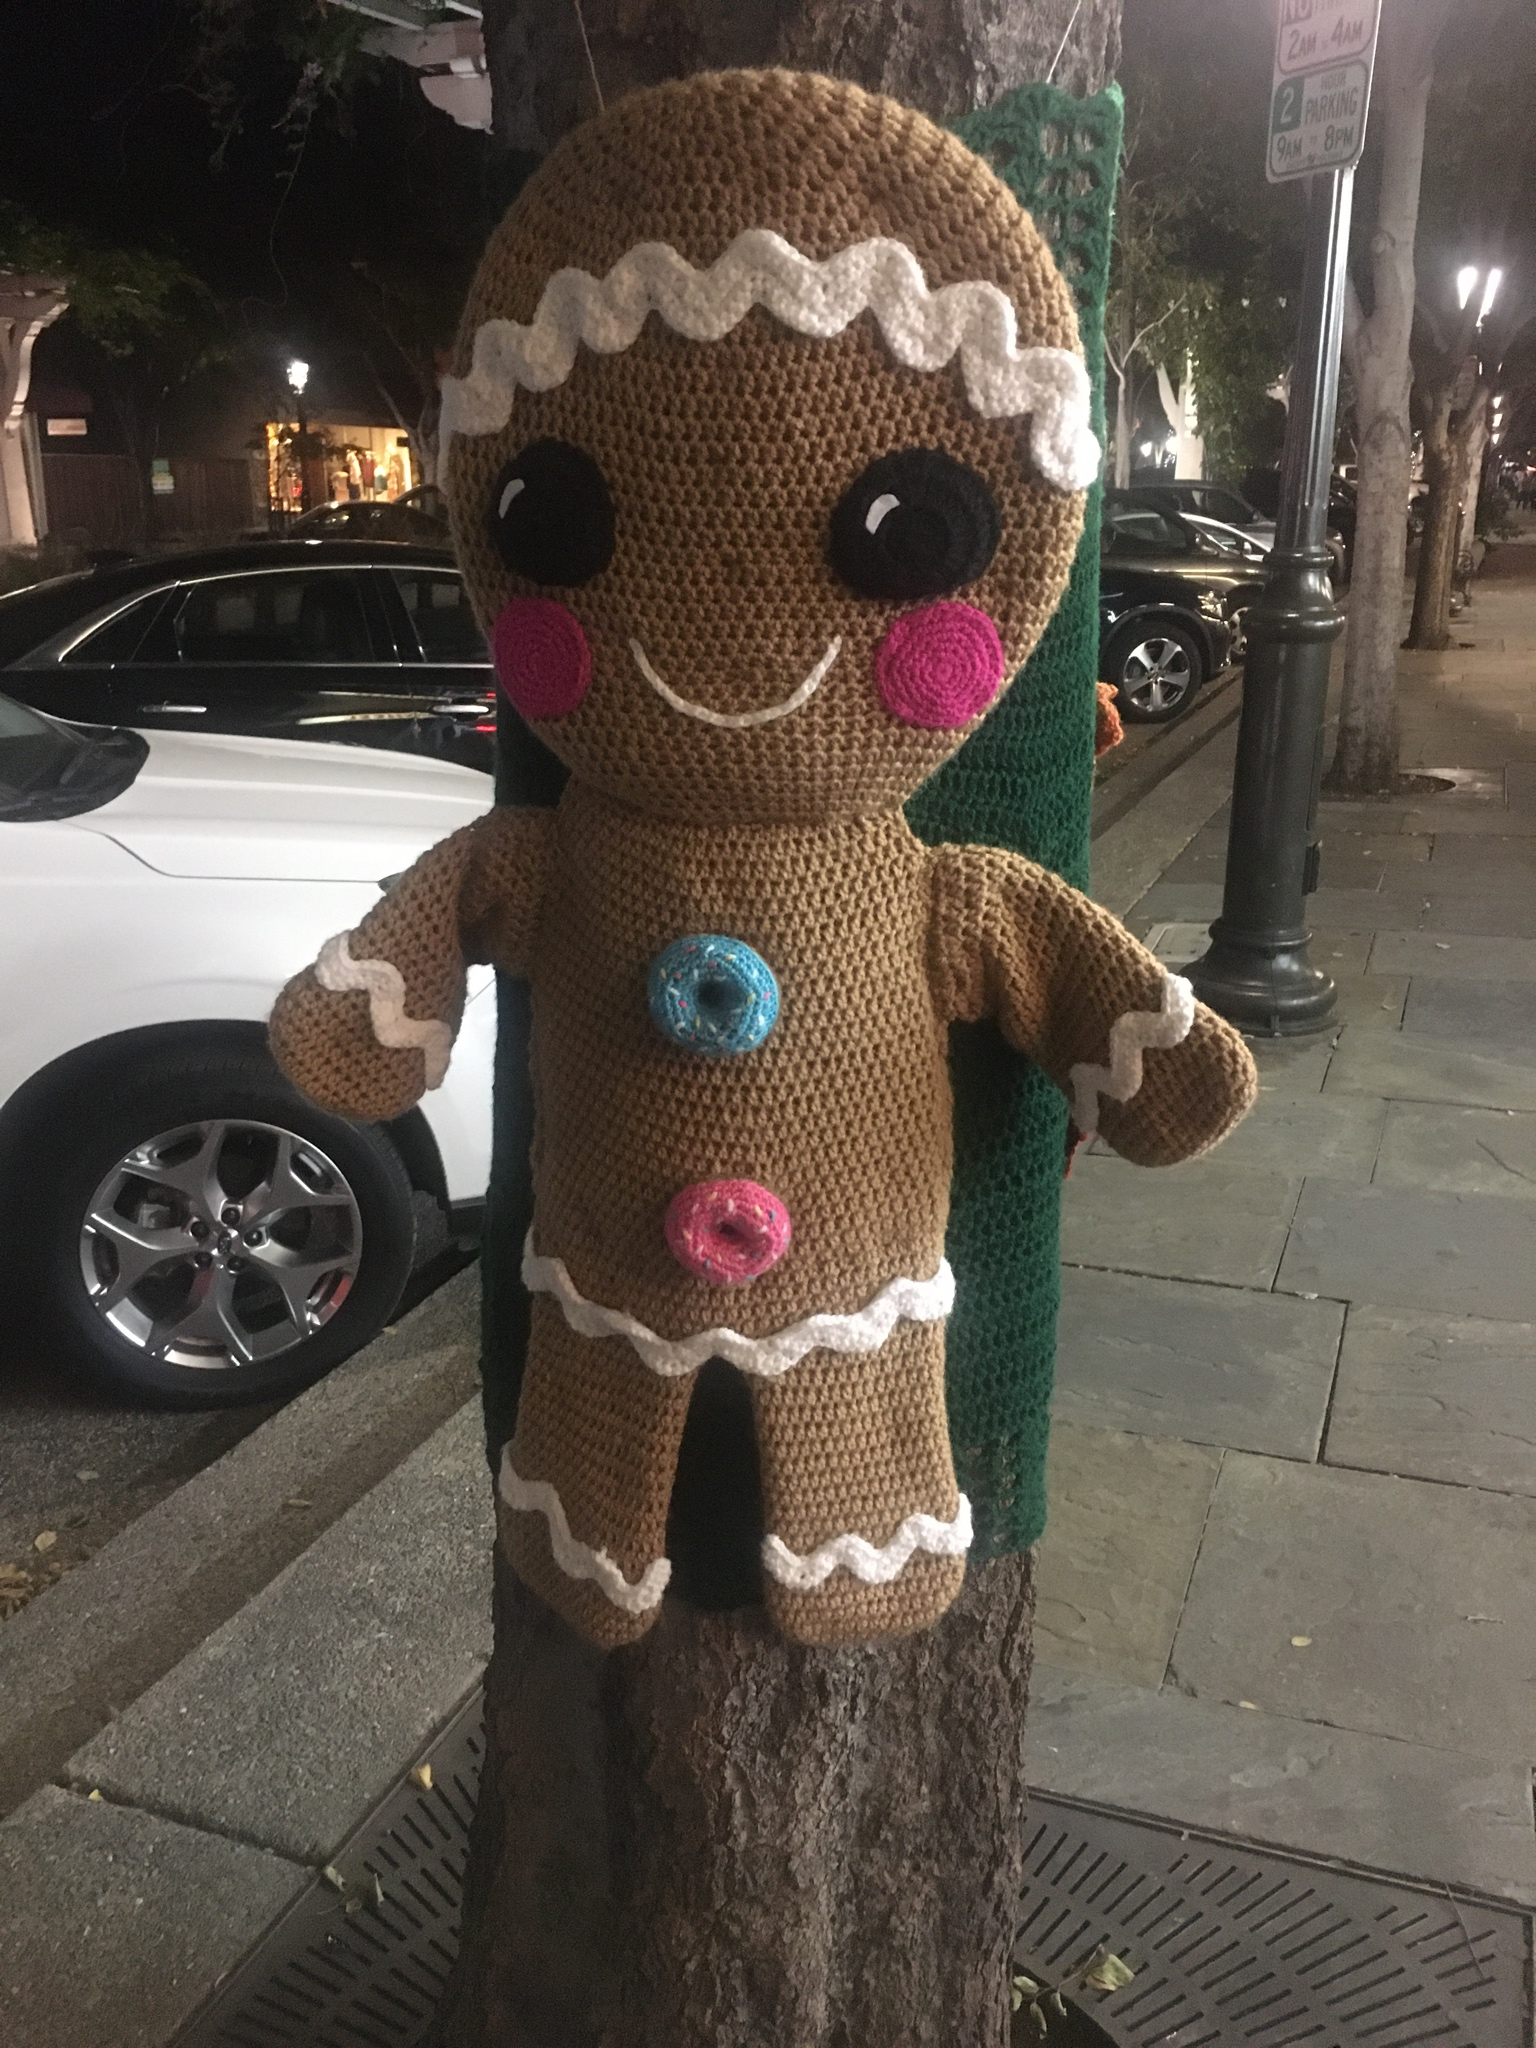 Gingerbread Man Yarn Bomb Spotted Outside a Doughnut Shop ...